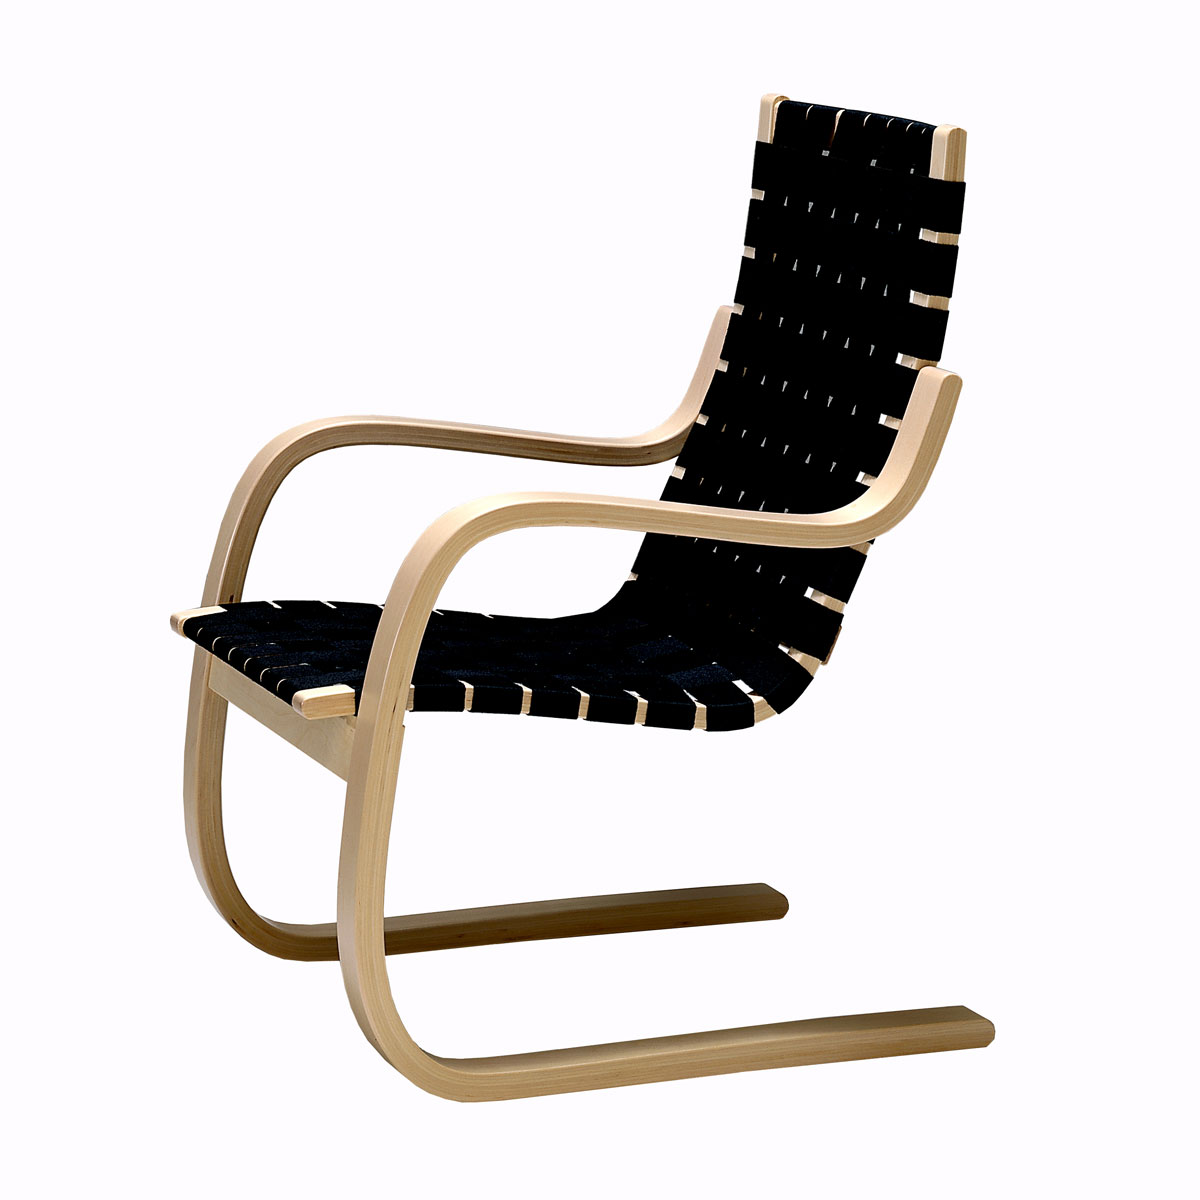 artek alvar aalto lounge chair 406 artek alvar aalto lounge armchairs. Black Bedroom Furniture Sets. Home Design Ideas